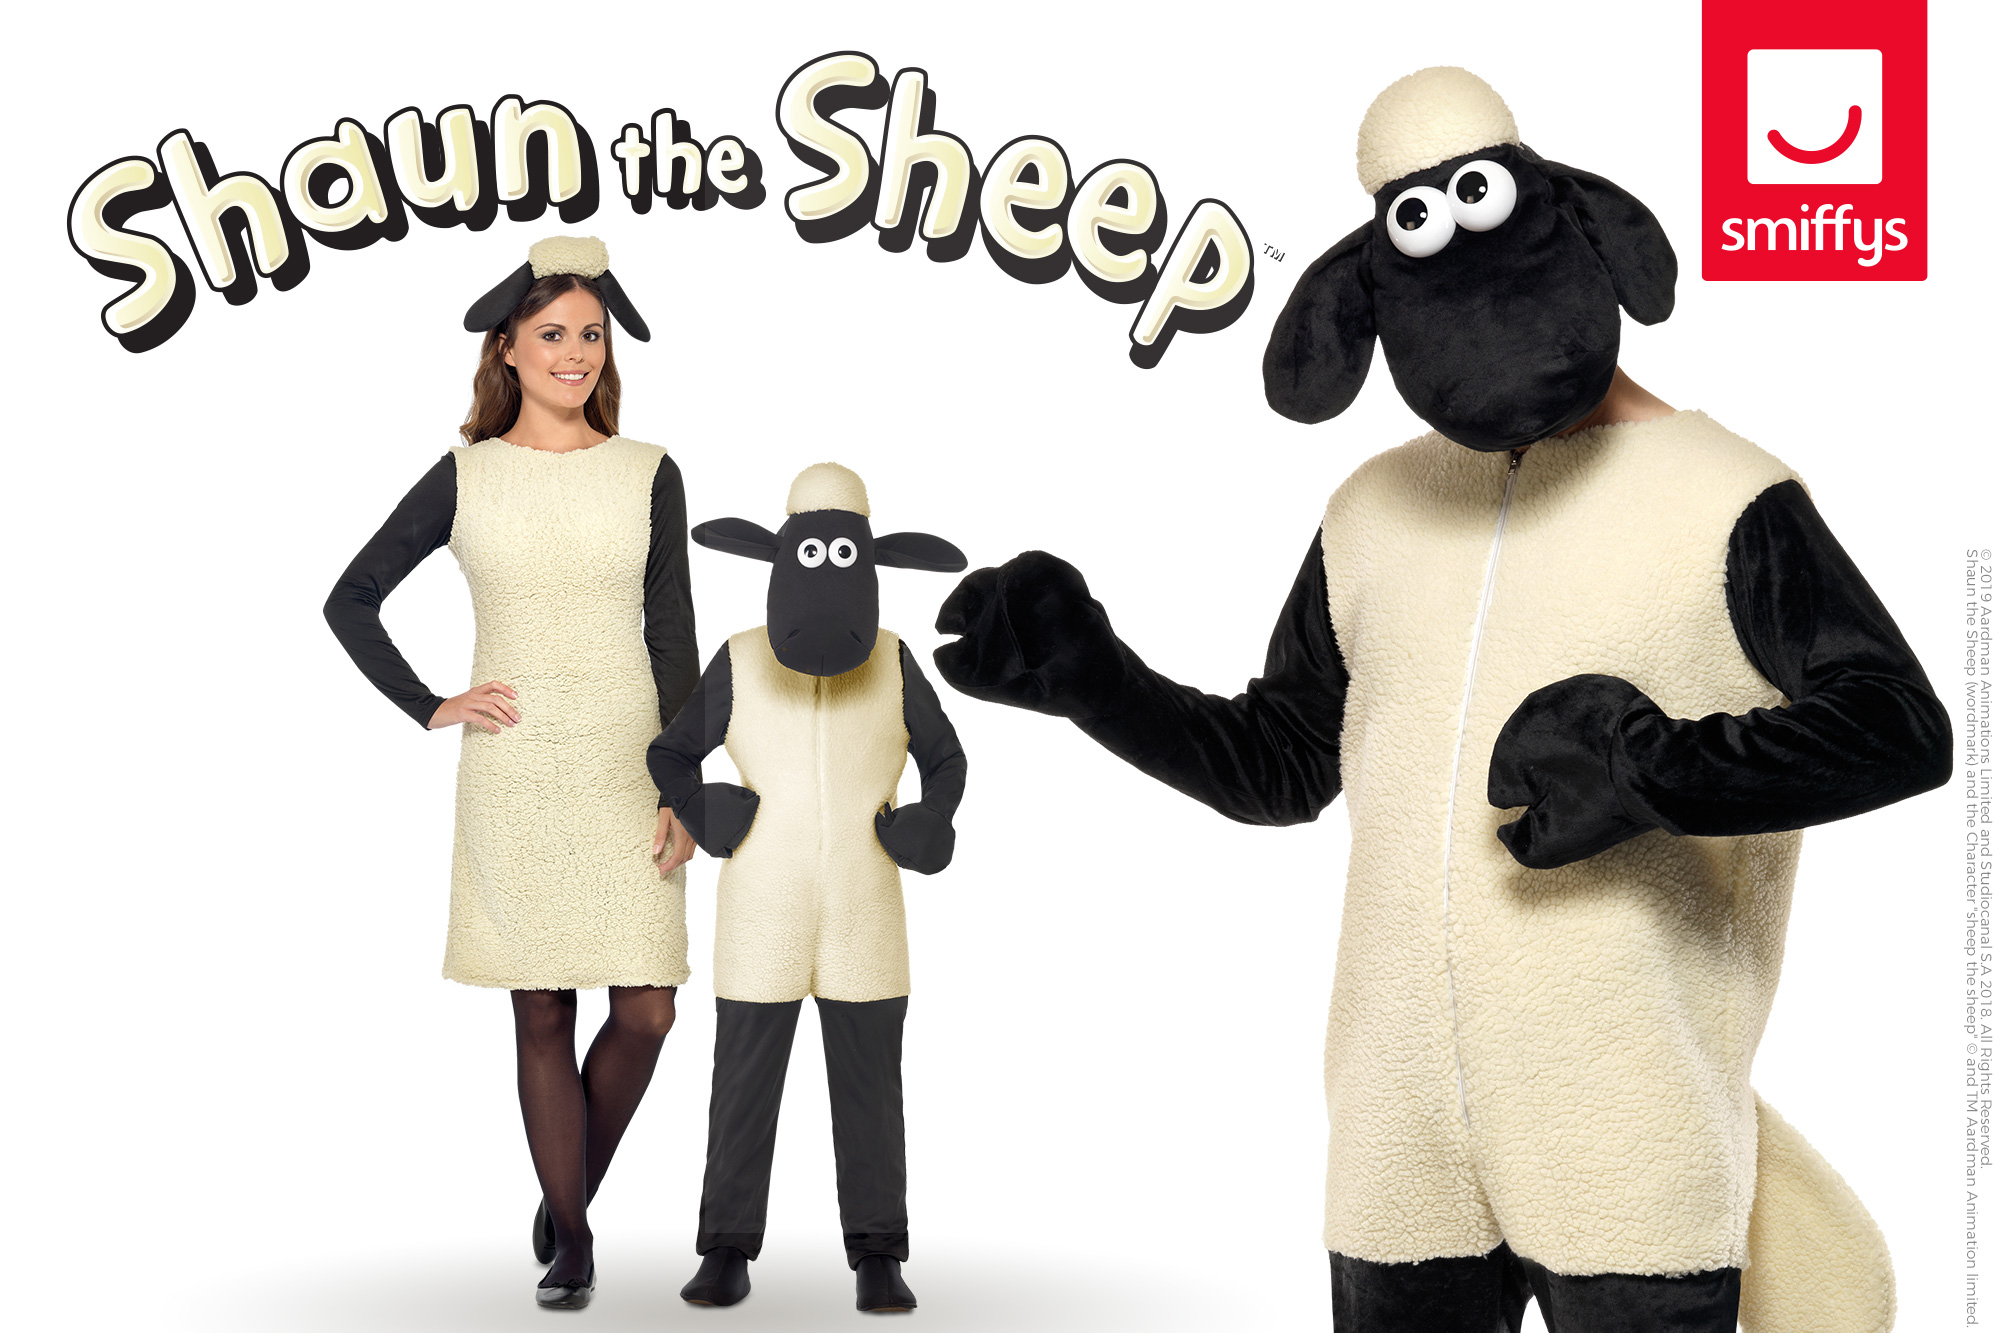 SMIFFYS SHAUN THE SHEEP DRESS-UP RANGE CELEBRATES THE UK RELEASE OF THE SHAUN THE SHEEP MOVIE: FARMAGEDDON